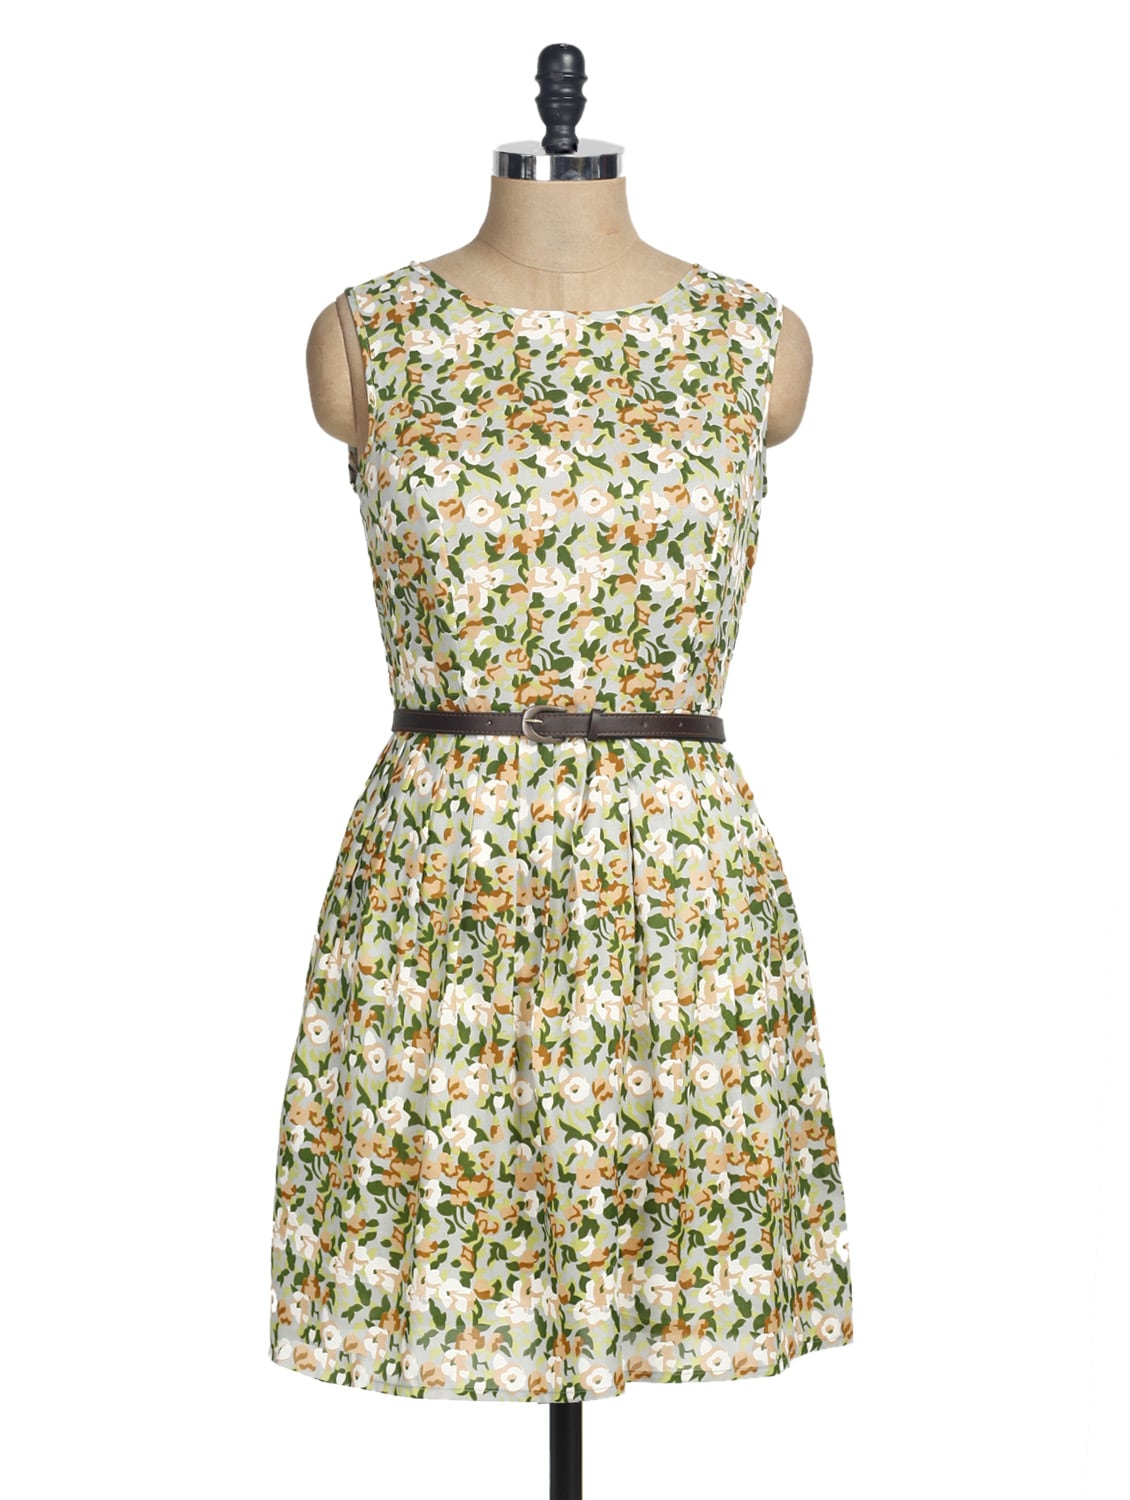 Colourful Floral Print Sleeveless Pleated Dress - La Zoire